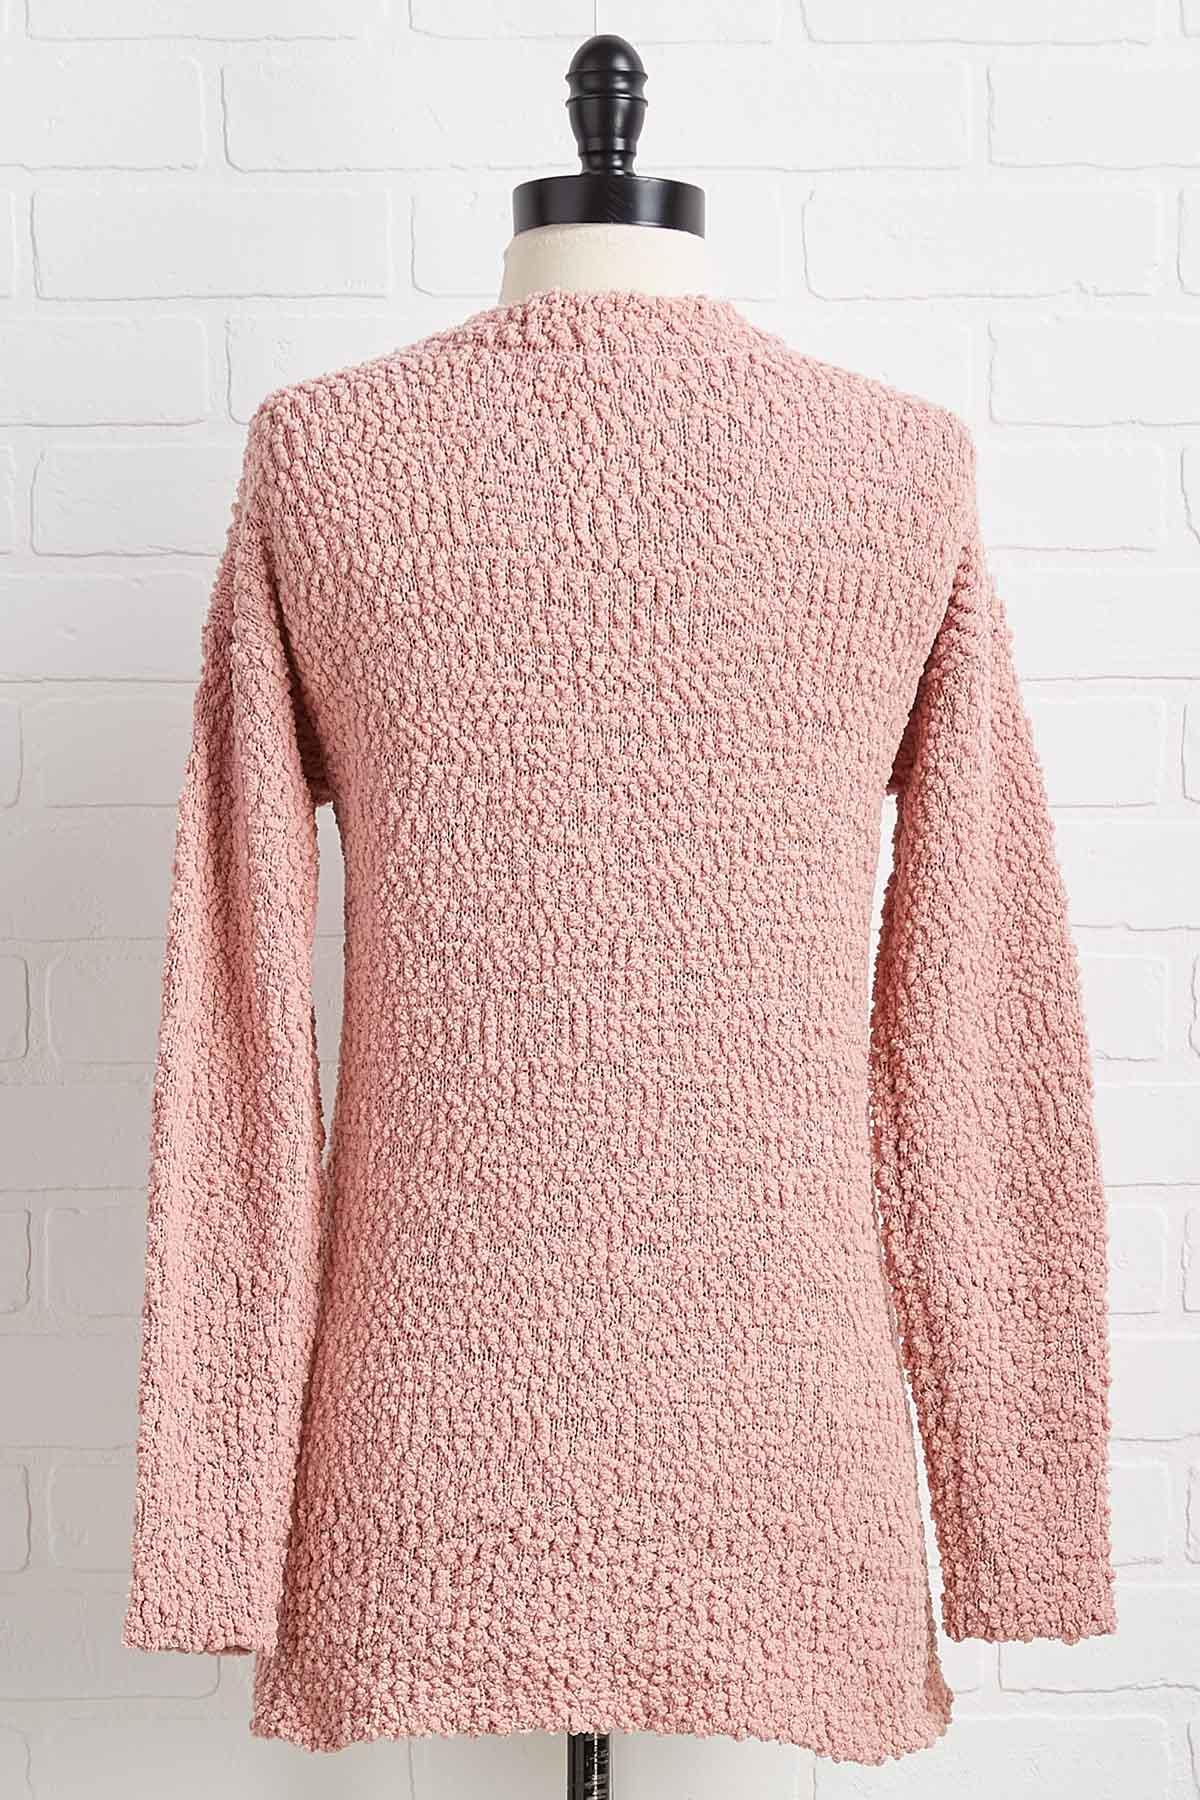 Asheville Pullover Sweater